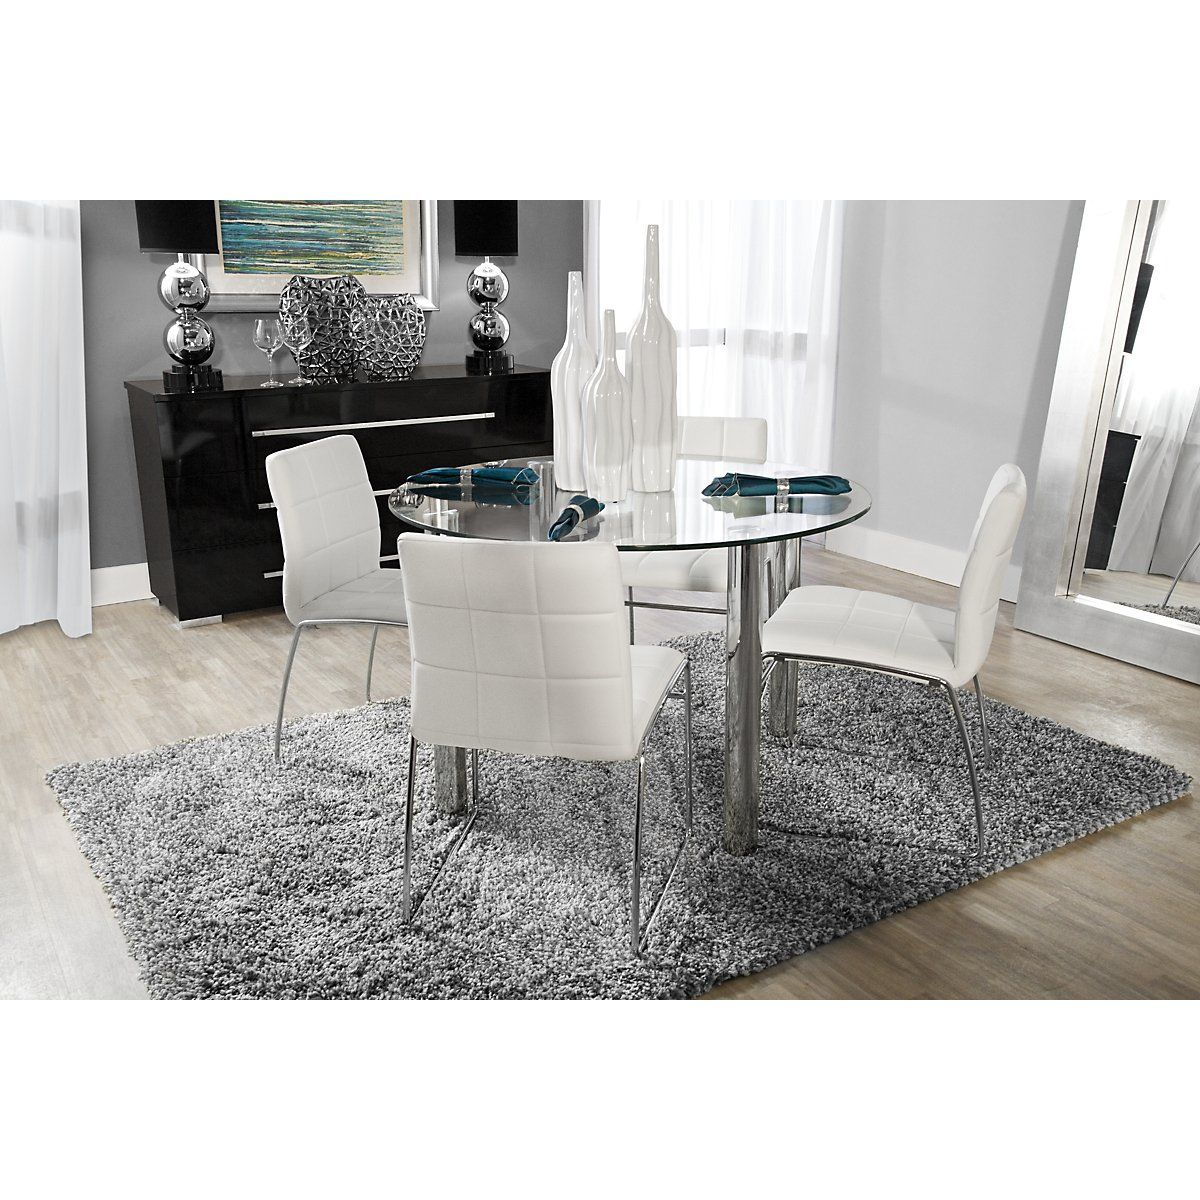 300 00 Set Includes Round Table And Four Side Chairs Update Your Dining E With The Contemporary Napoli Enjoy Aesthetic Beauty Of